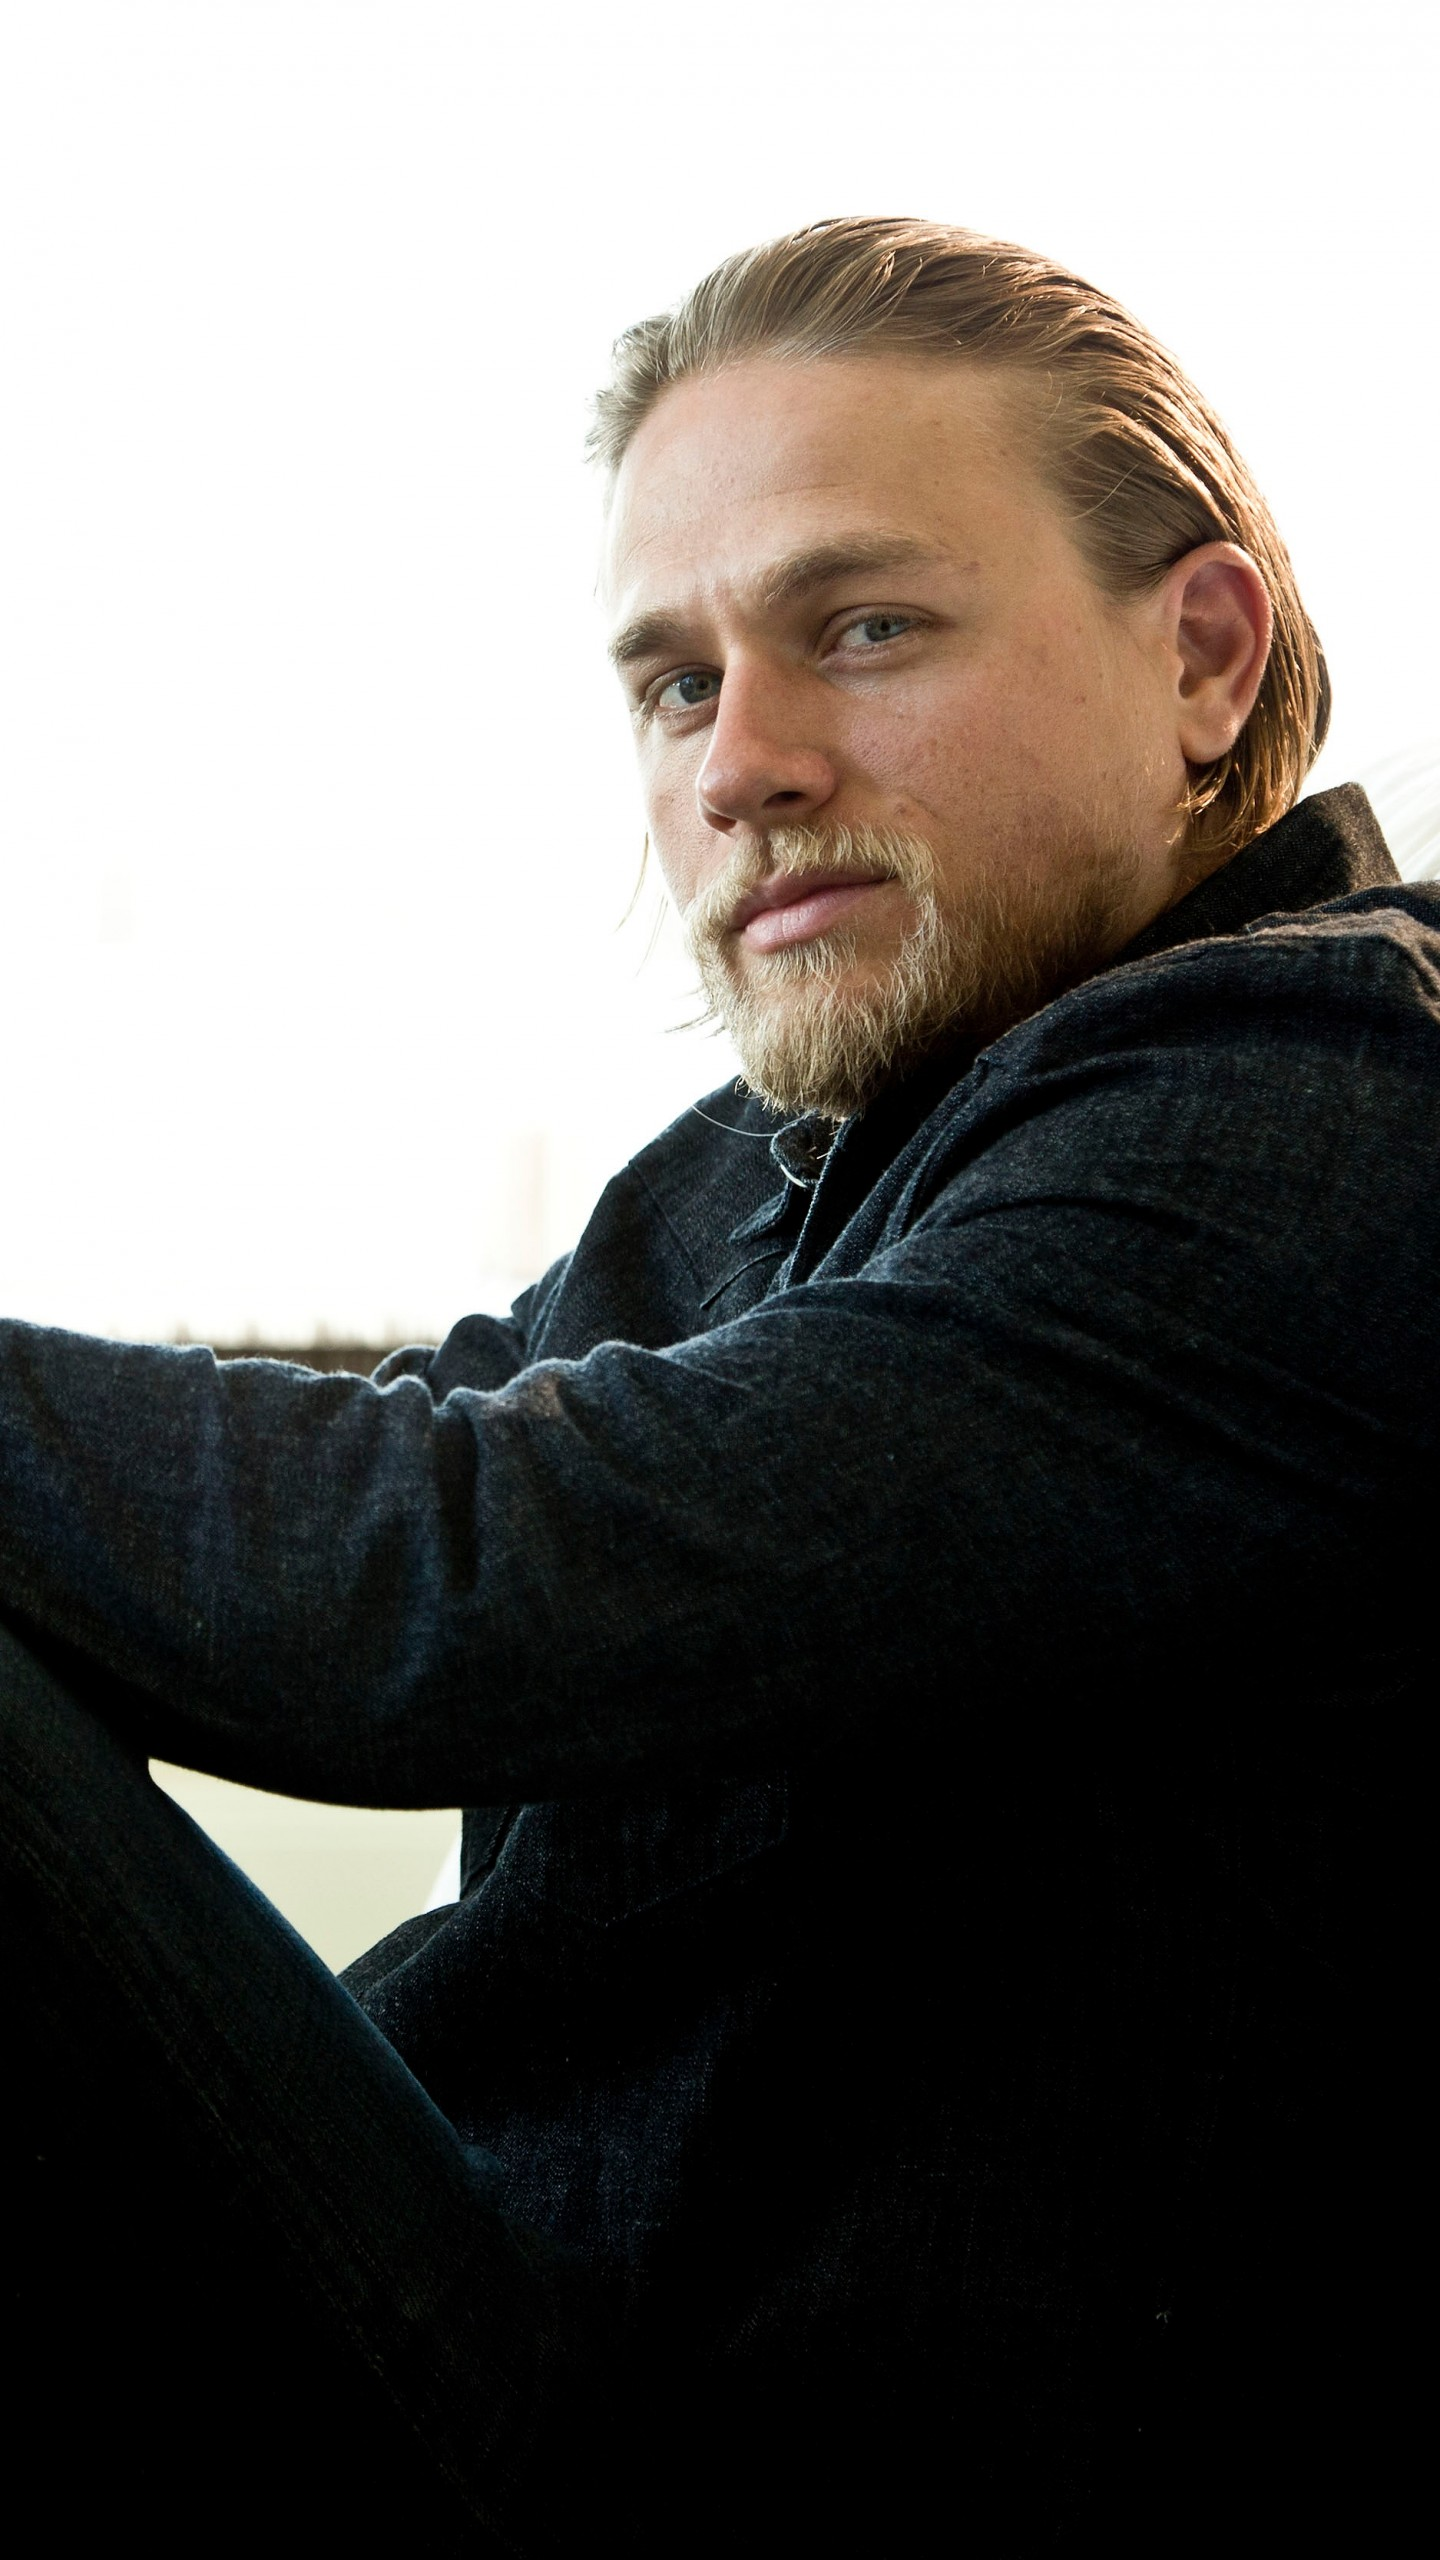 Wolf Quotes Wallpaper Wallpaper Charlie Hunnam Most Popular Celebs In 2015